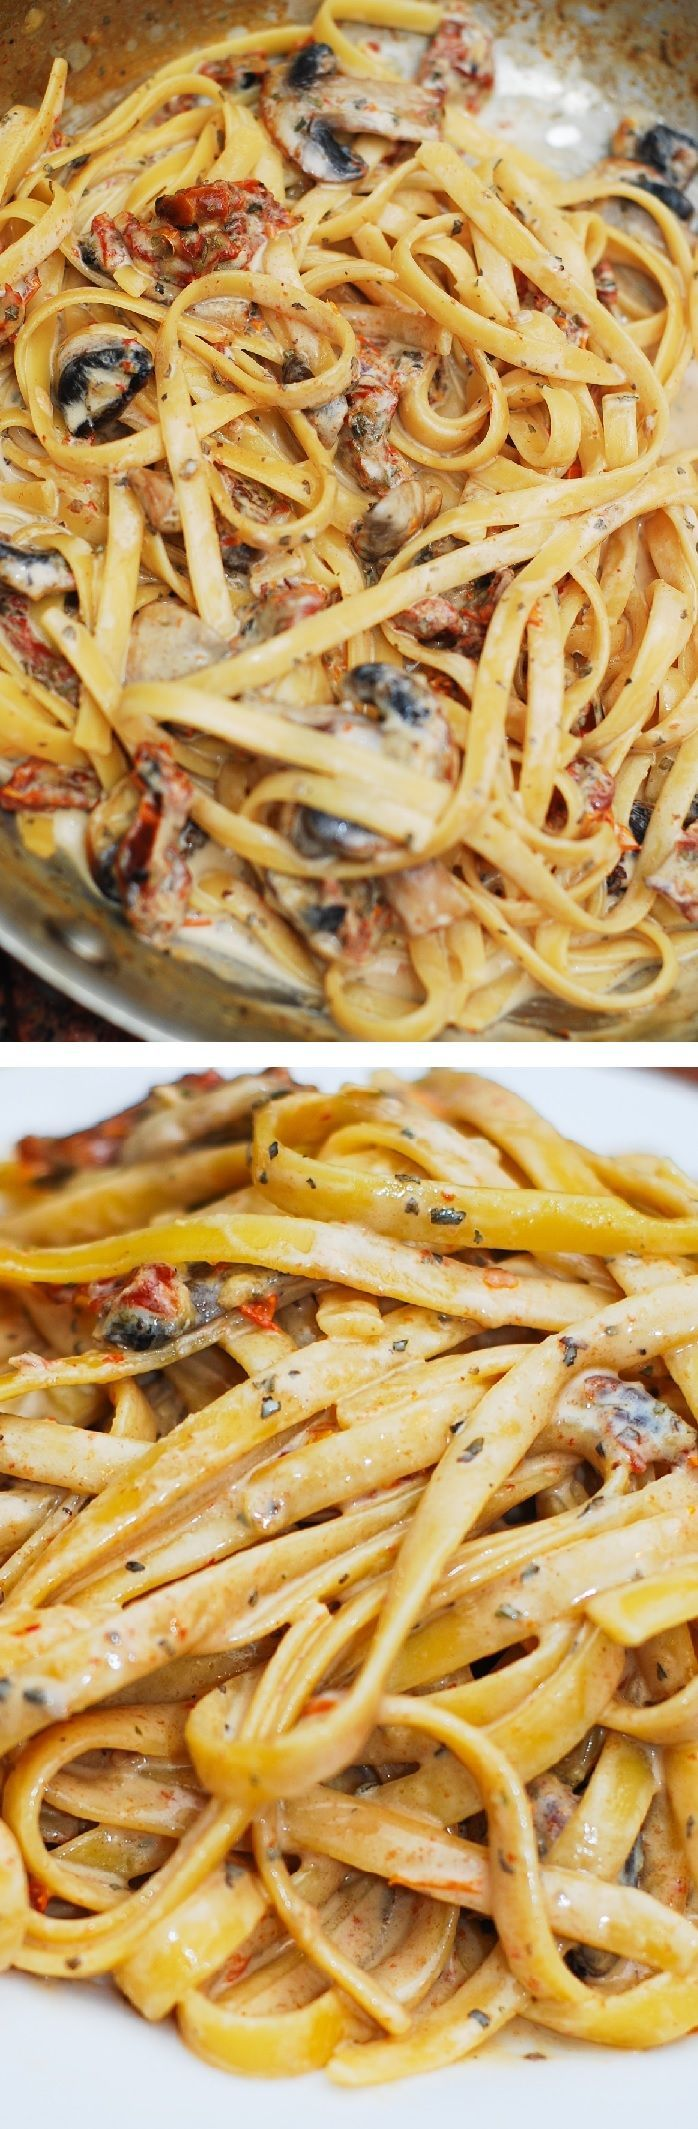 Sun dried tomato and mushroom pasta in a garlic and basil sauce - an Italian comfort food! /juliasalbum/